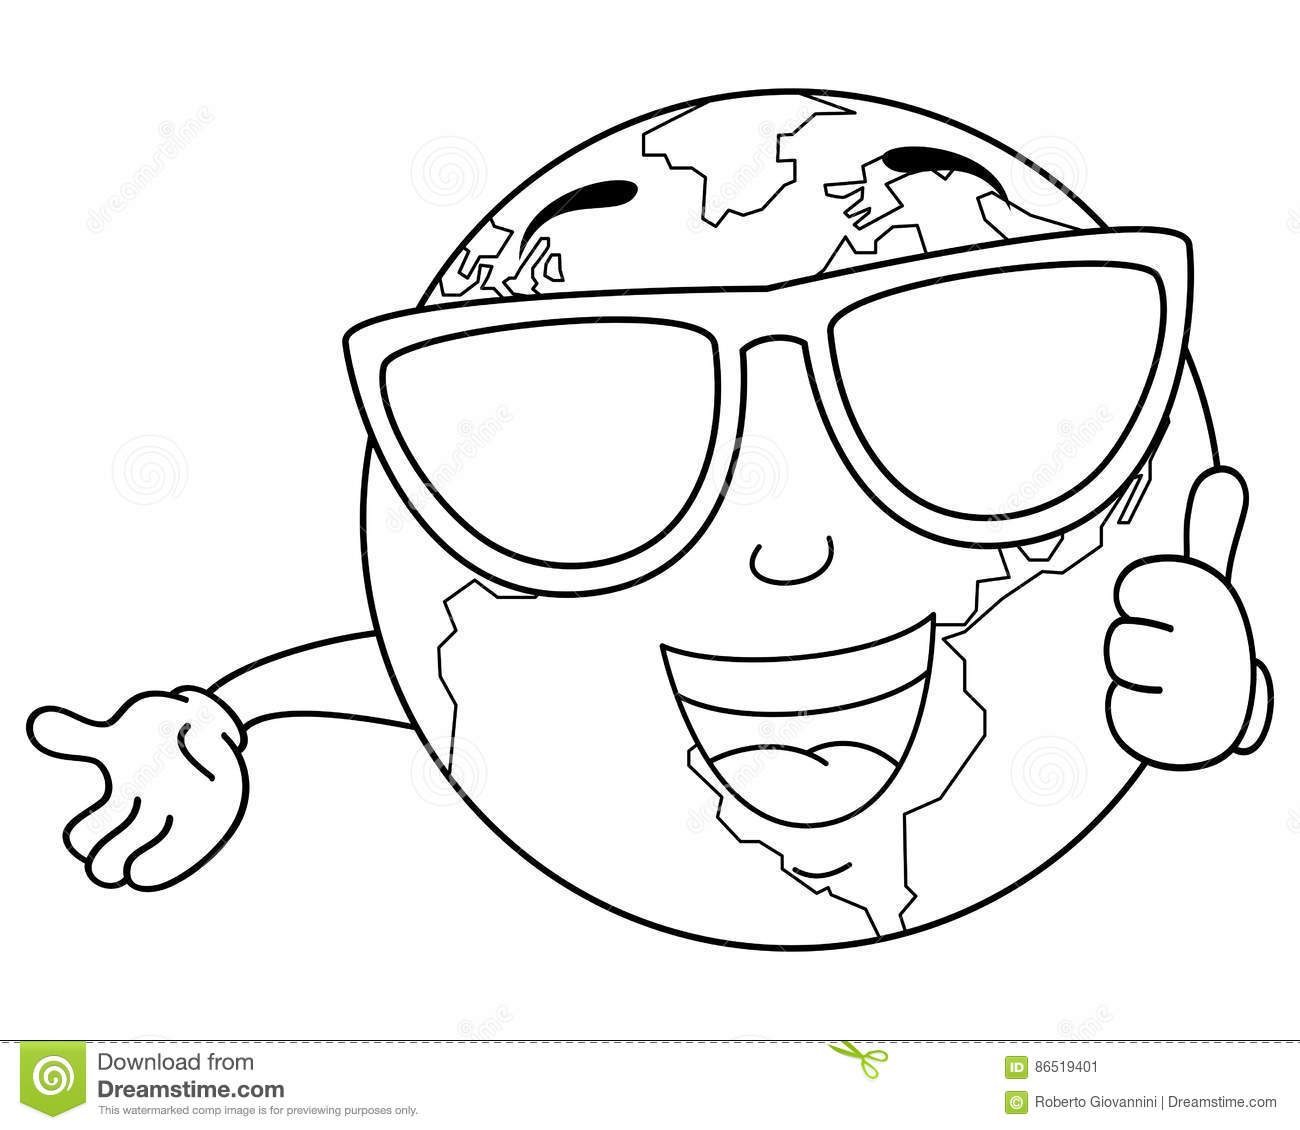 coloring planet earth sketched doodle vector illustration